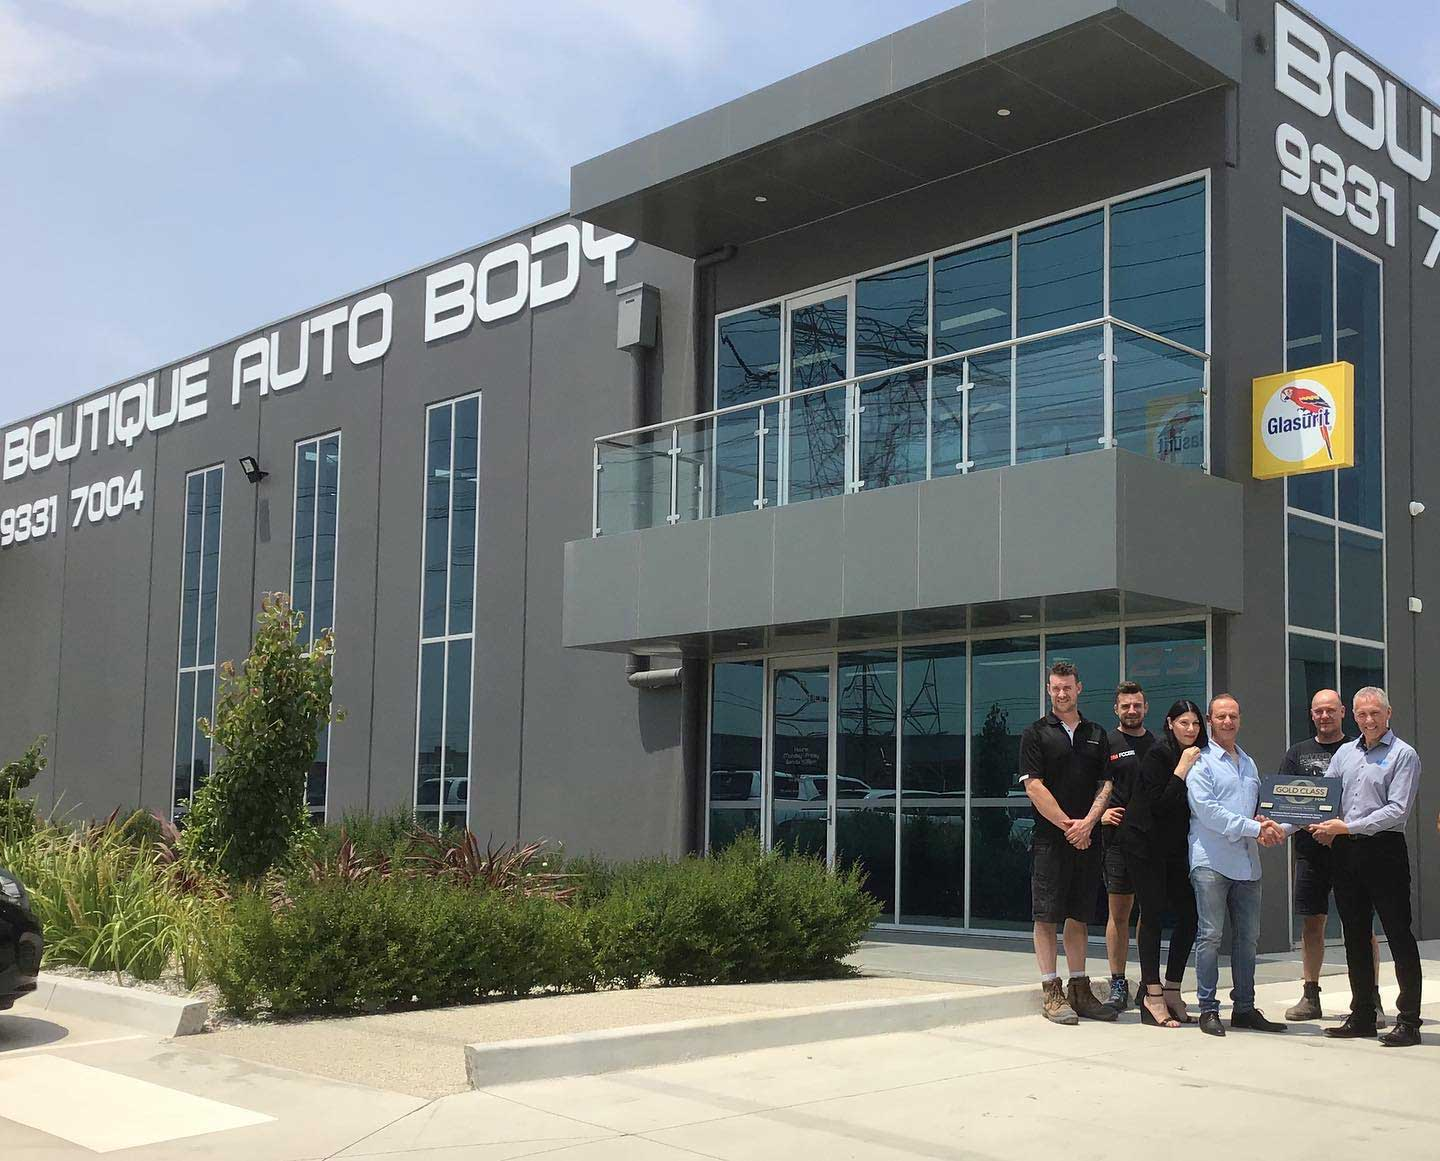 Boutique Auto Body Receiving Their I-Car Gold Class Certification